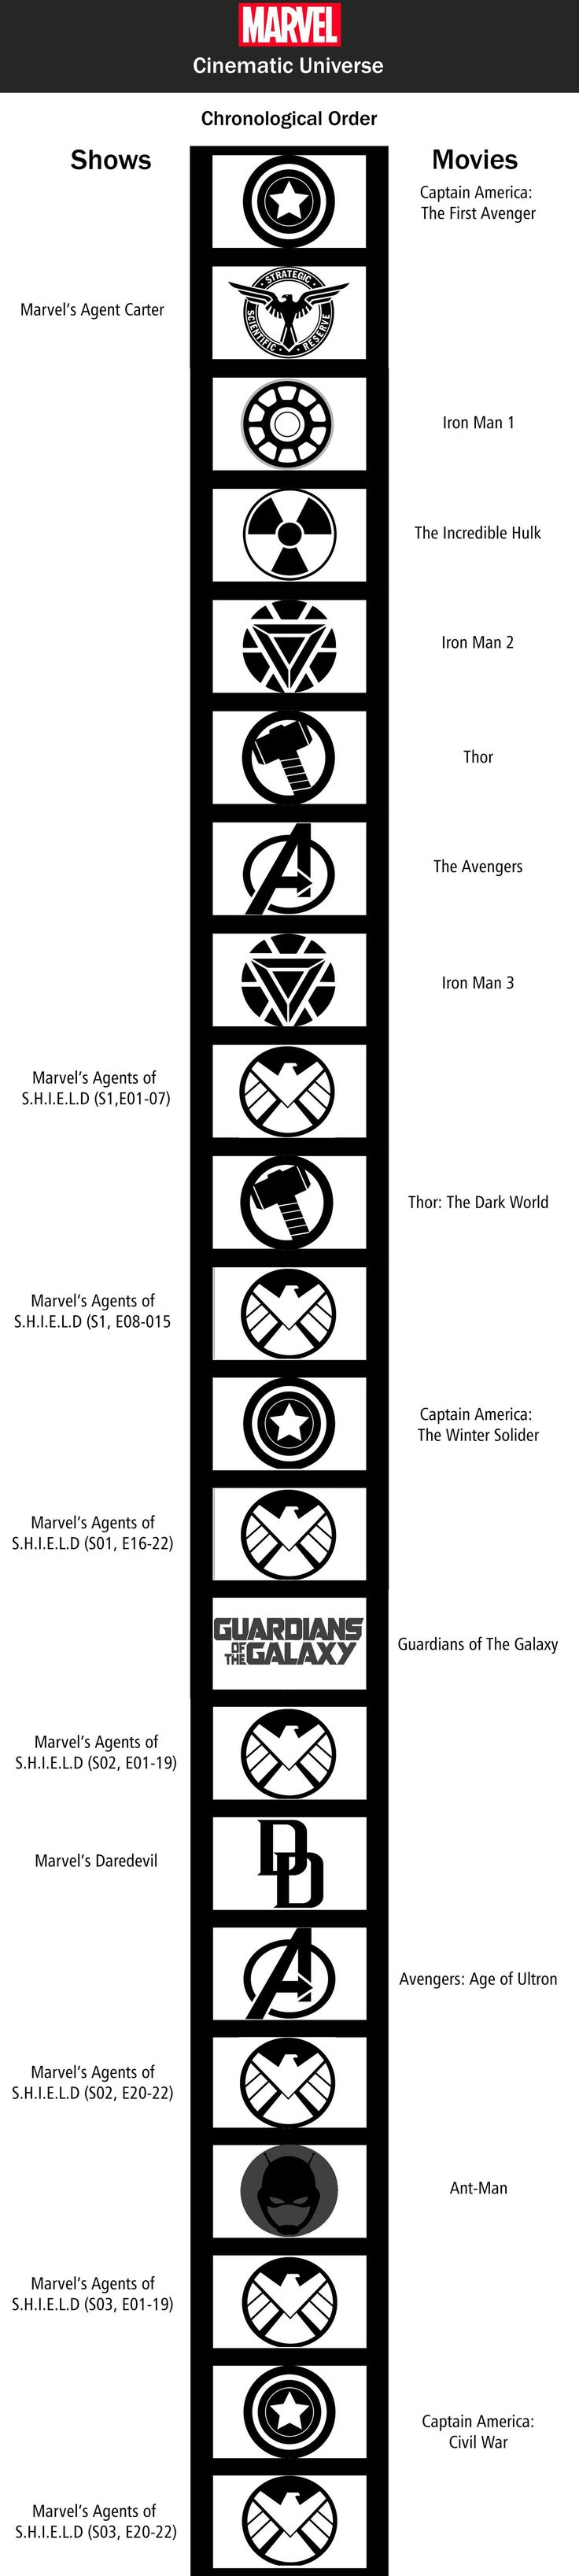 Marvel Movies and Shows in Chronological order